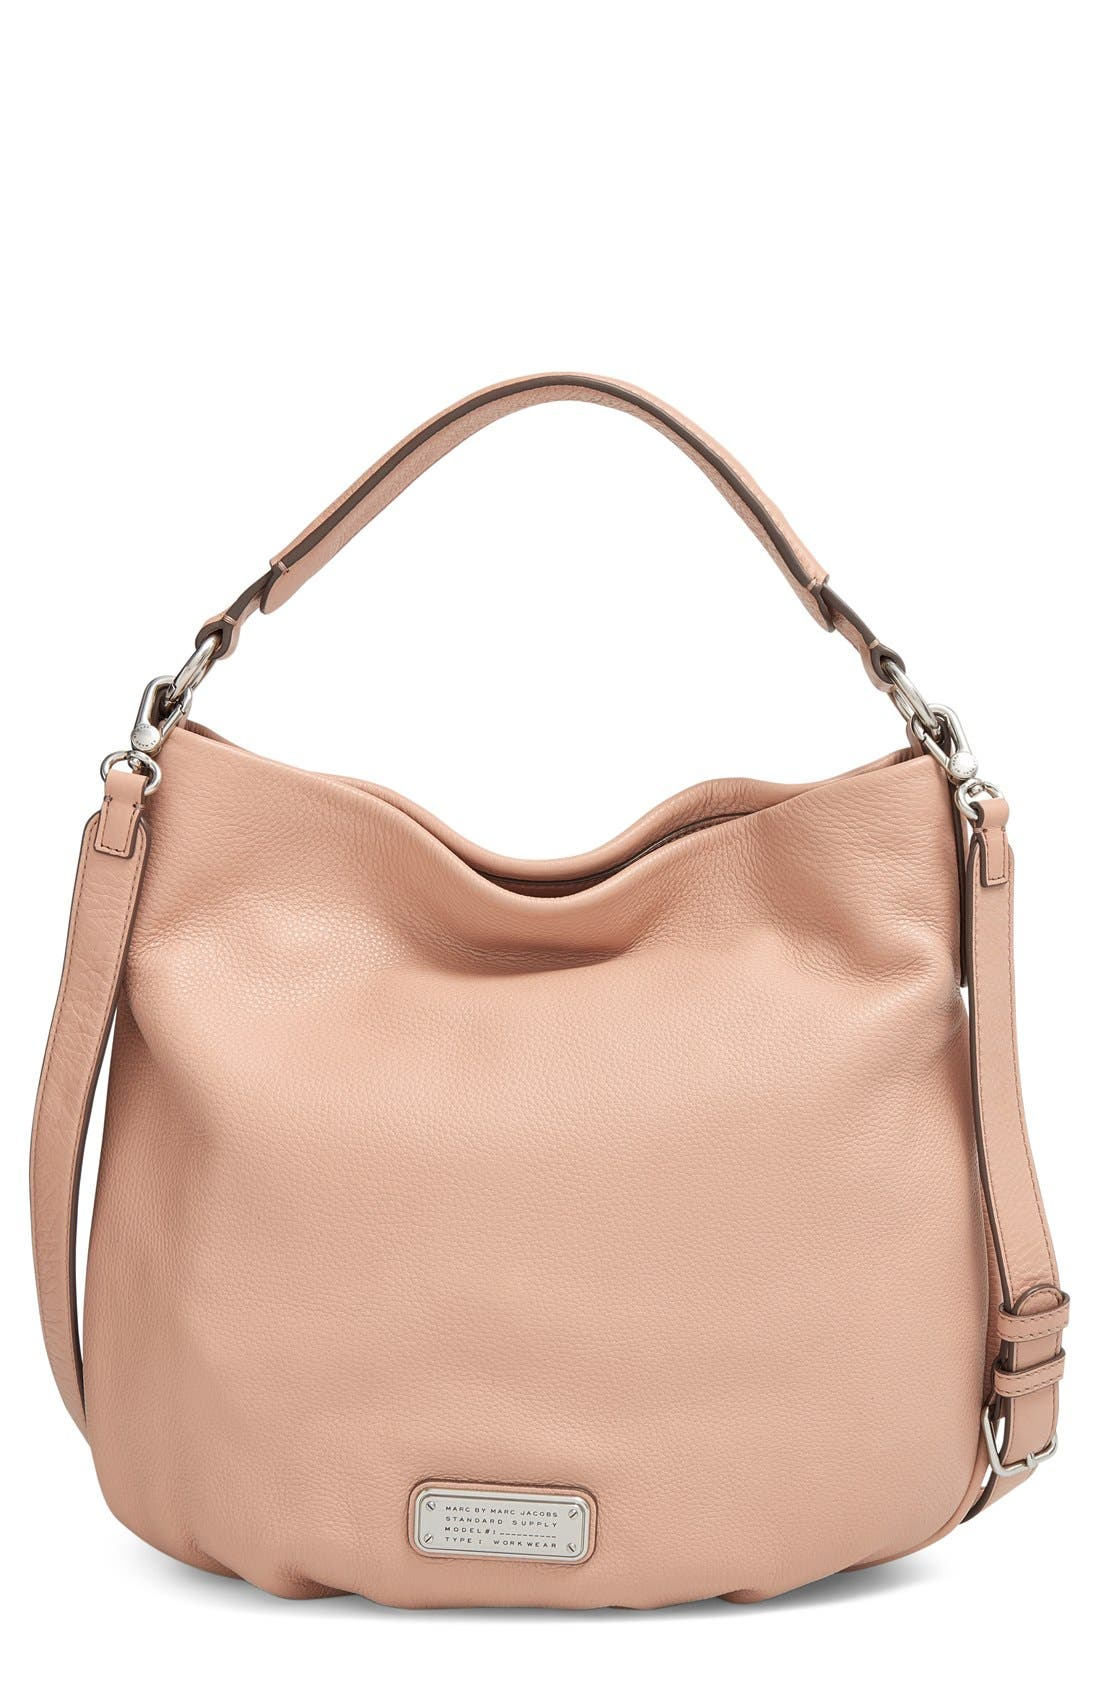 MARC BY MARC JACOBS 'New Q Hillier' Hobo,                             Main thumbnail 1, color,                             Cameo Nude